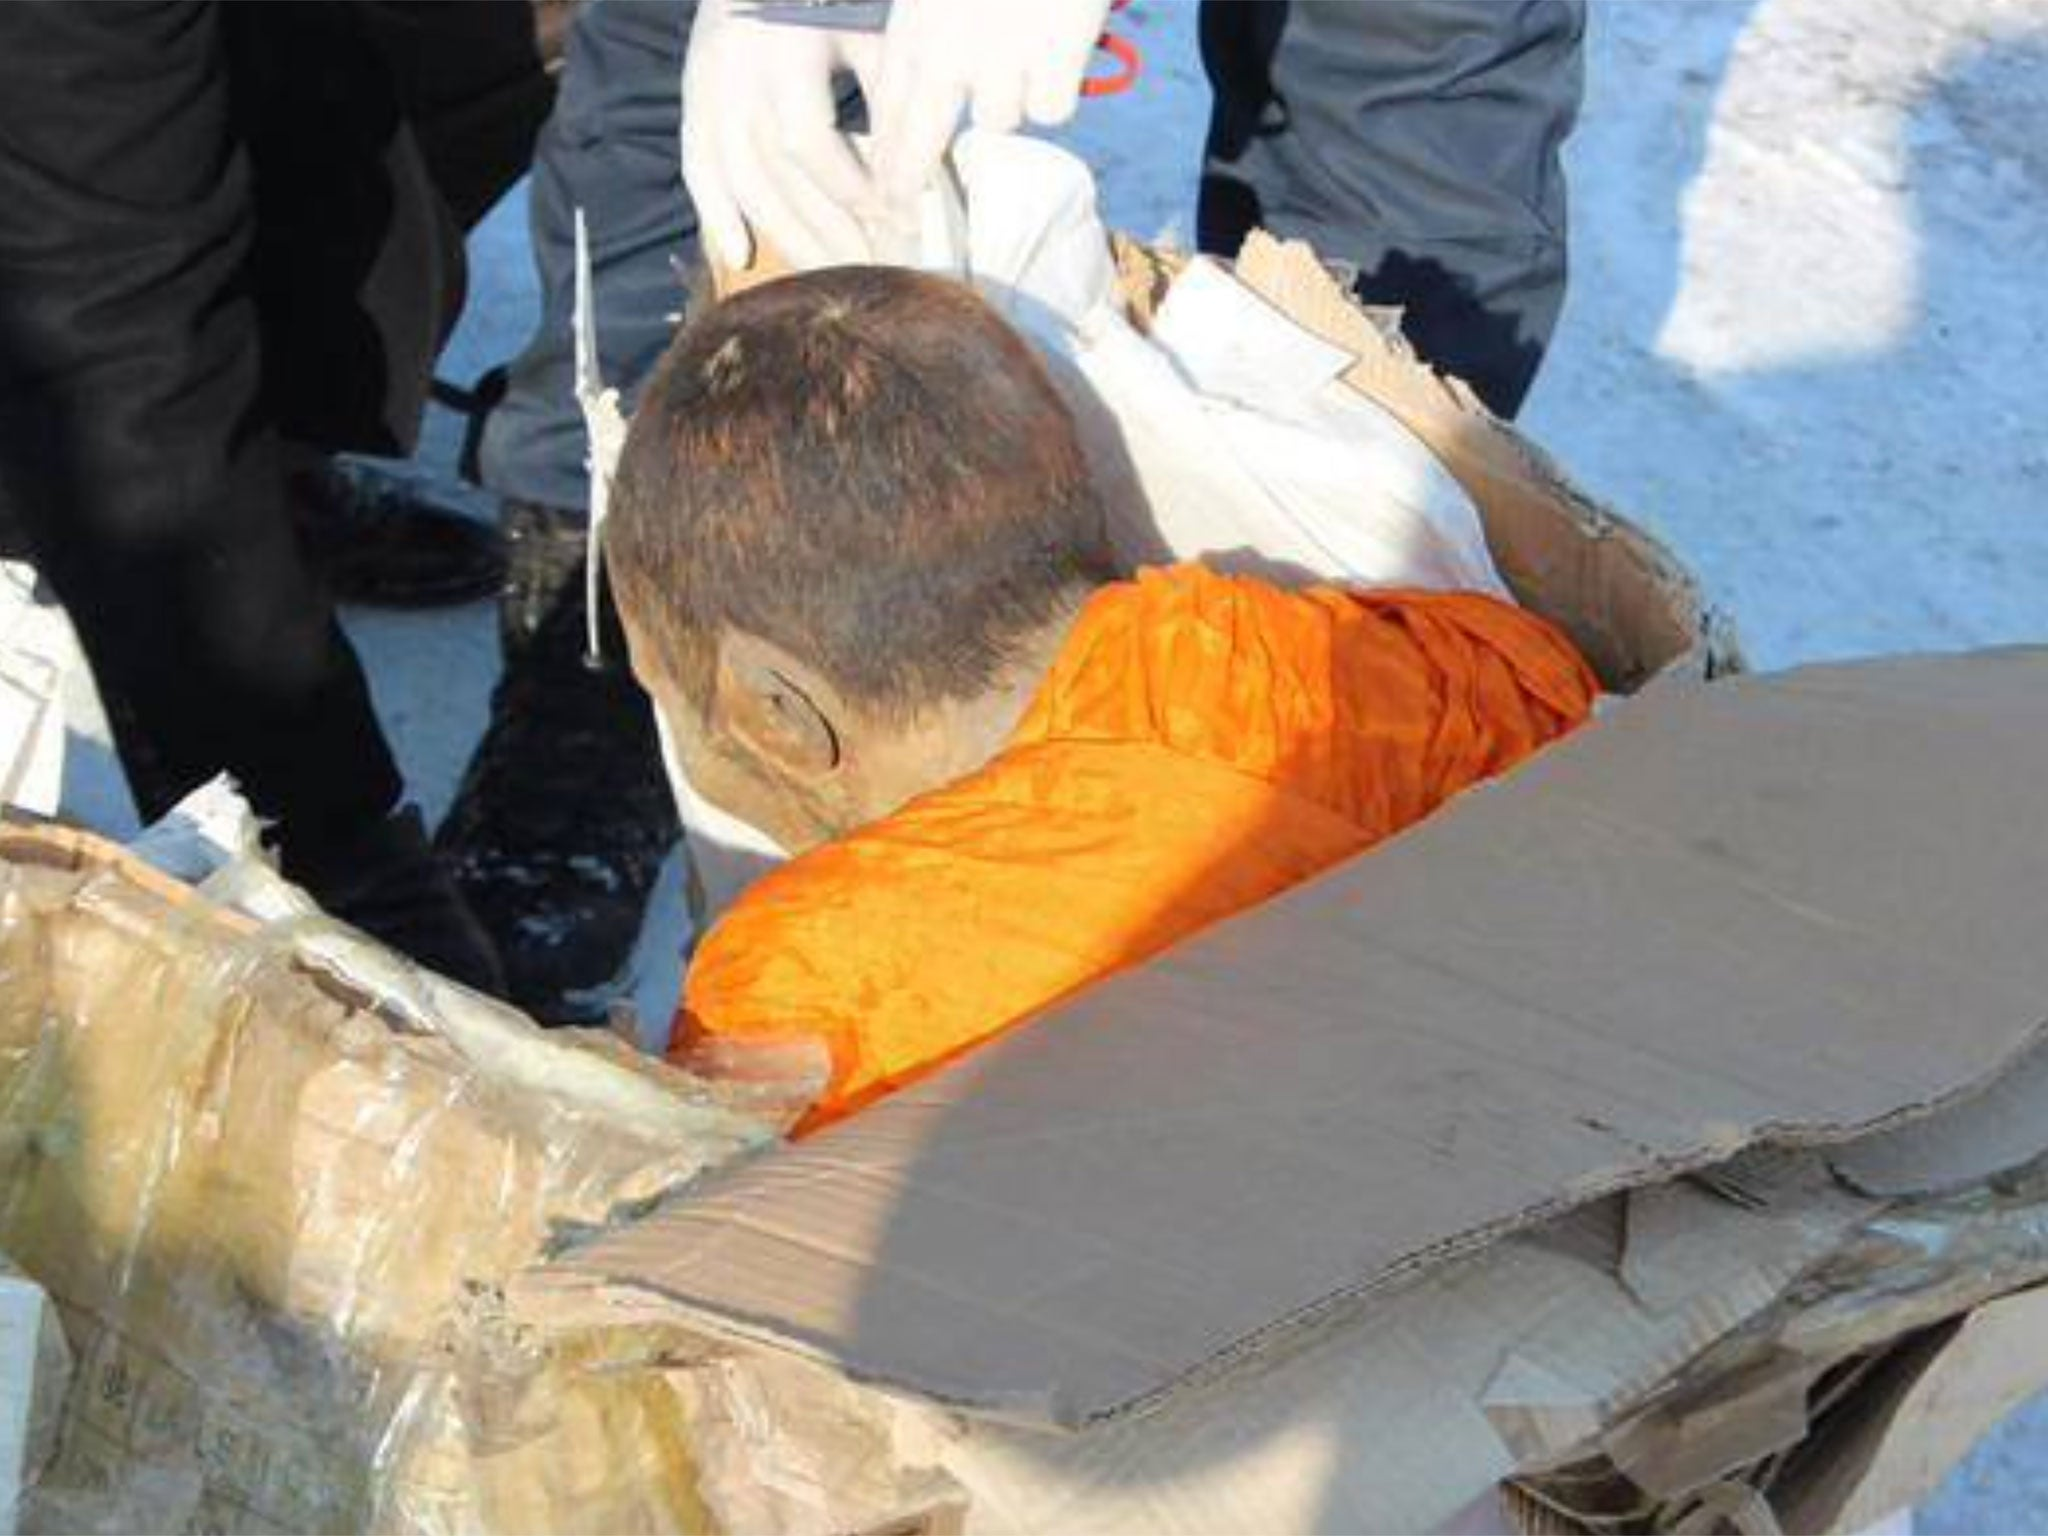 Mummified 200-year-old monk found in Mongolia in 'very deep meditation', Buddhist academic claims